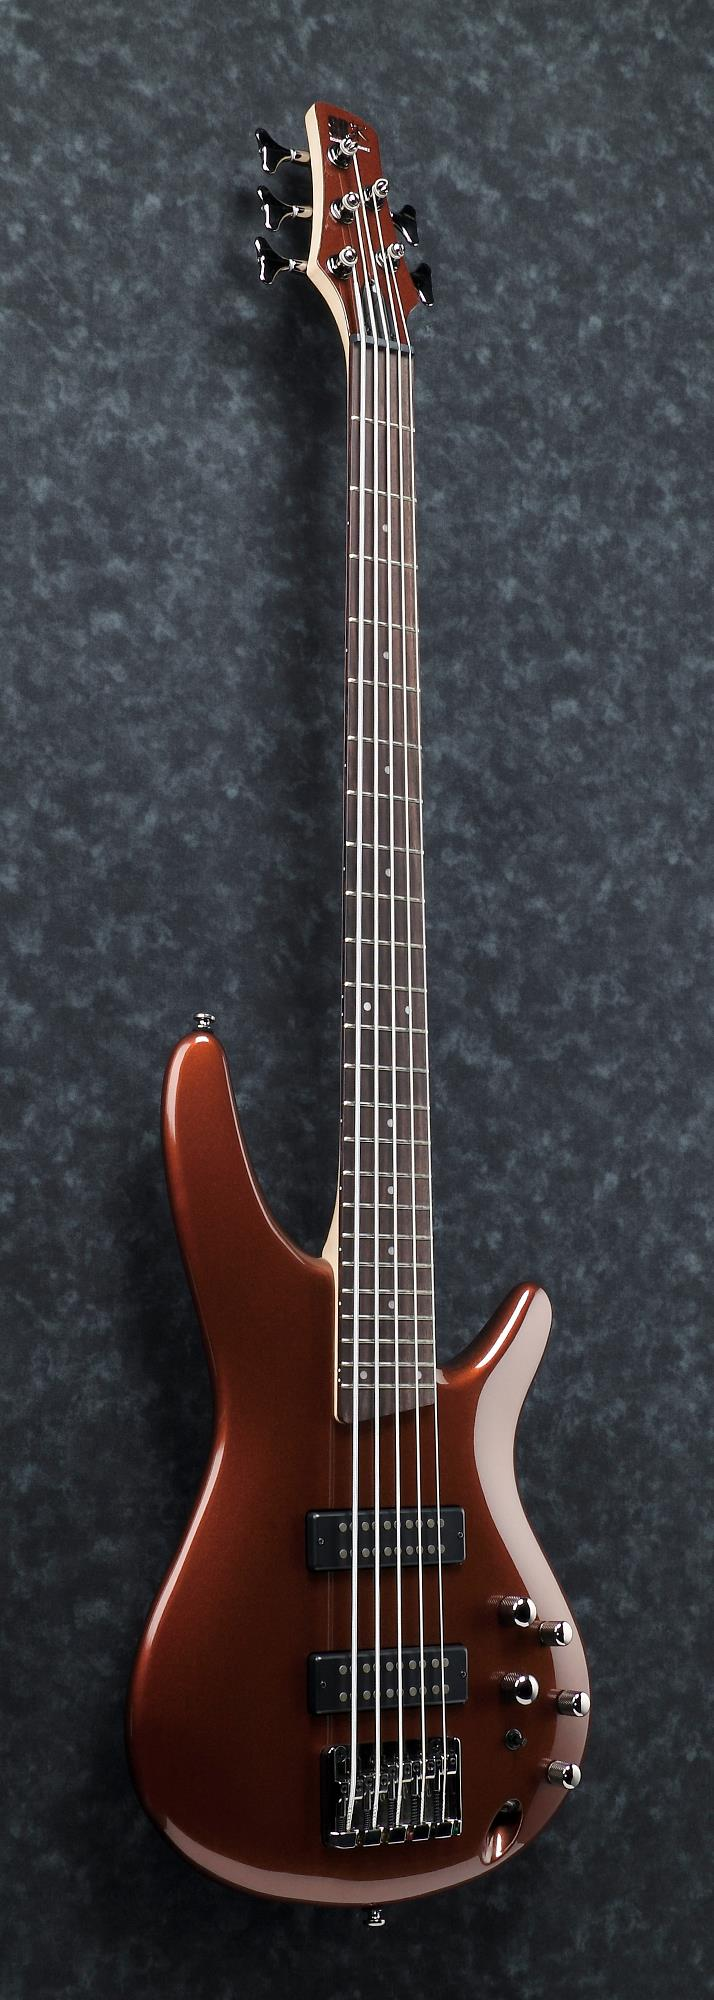 Ibanez SR305E - Electric Bass - 5 String - Root Beer Metallic